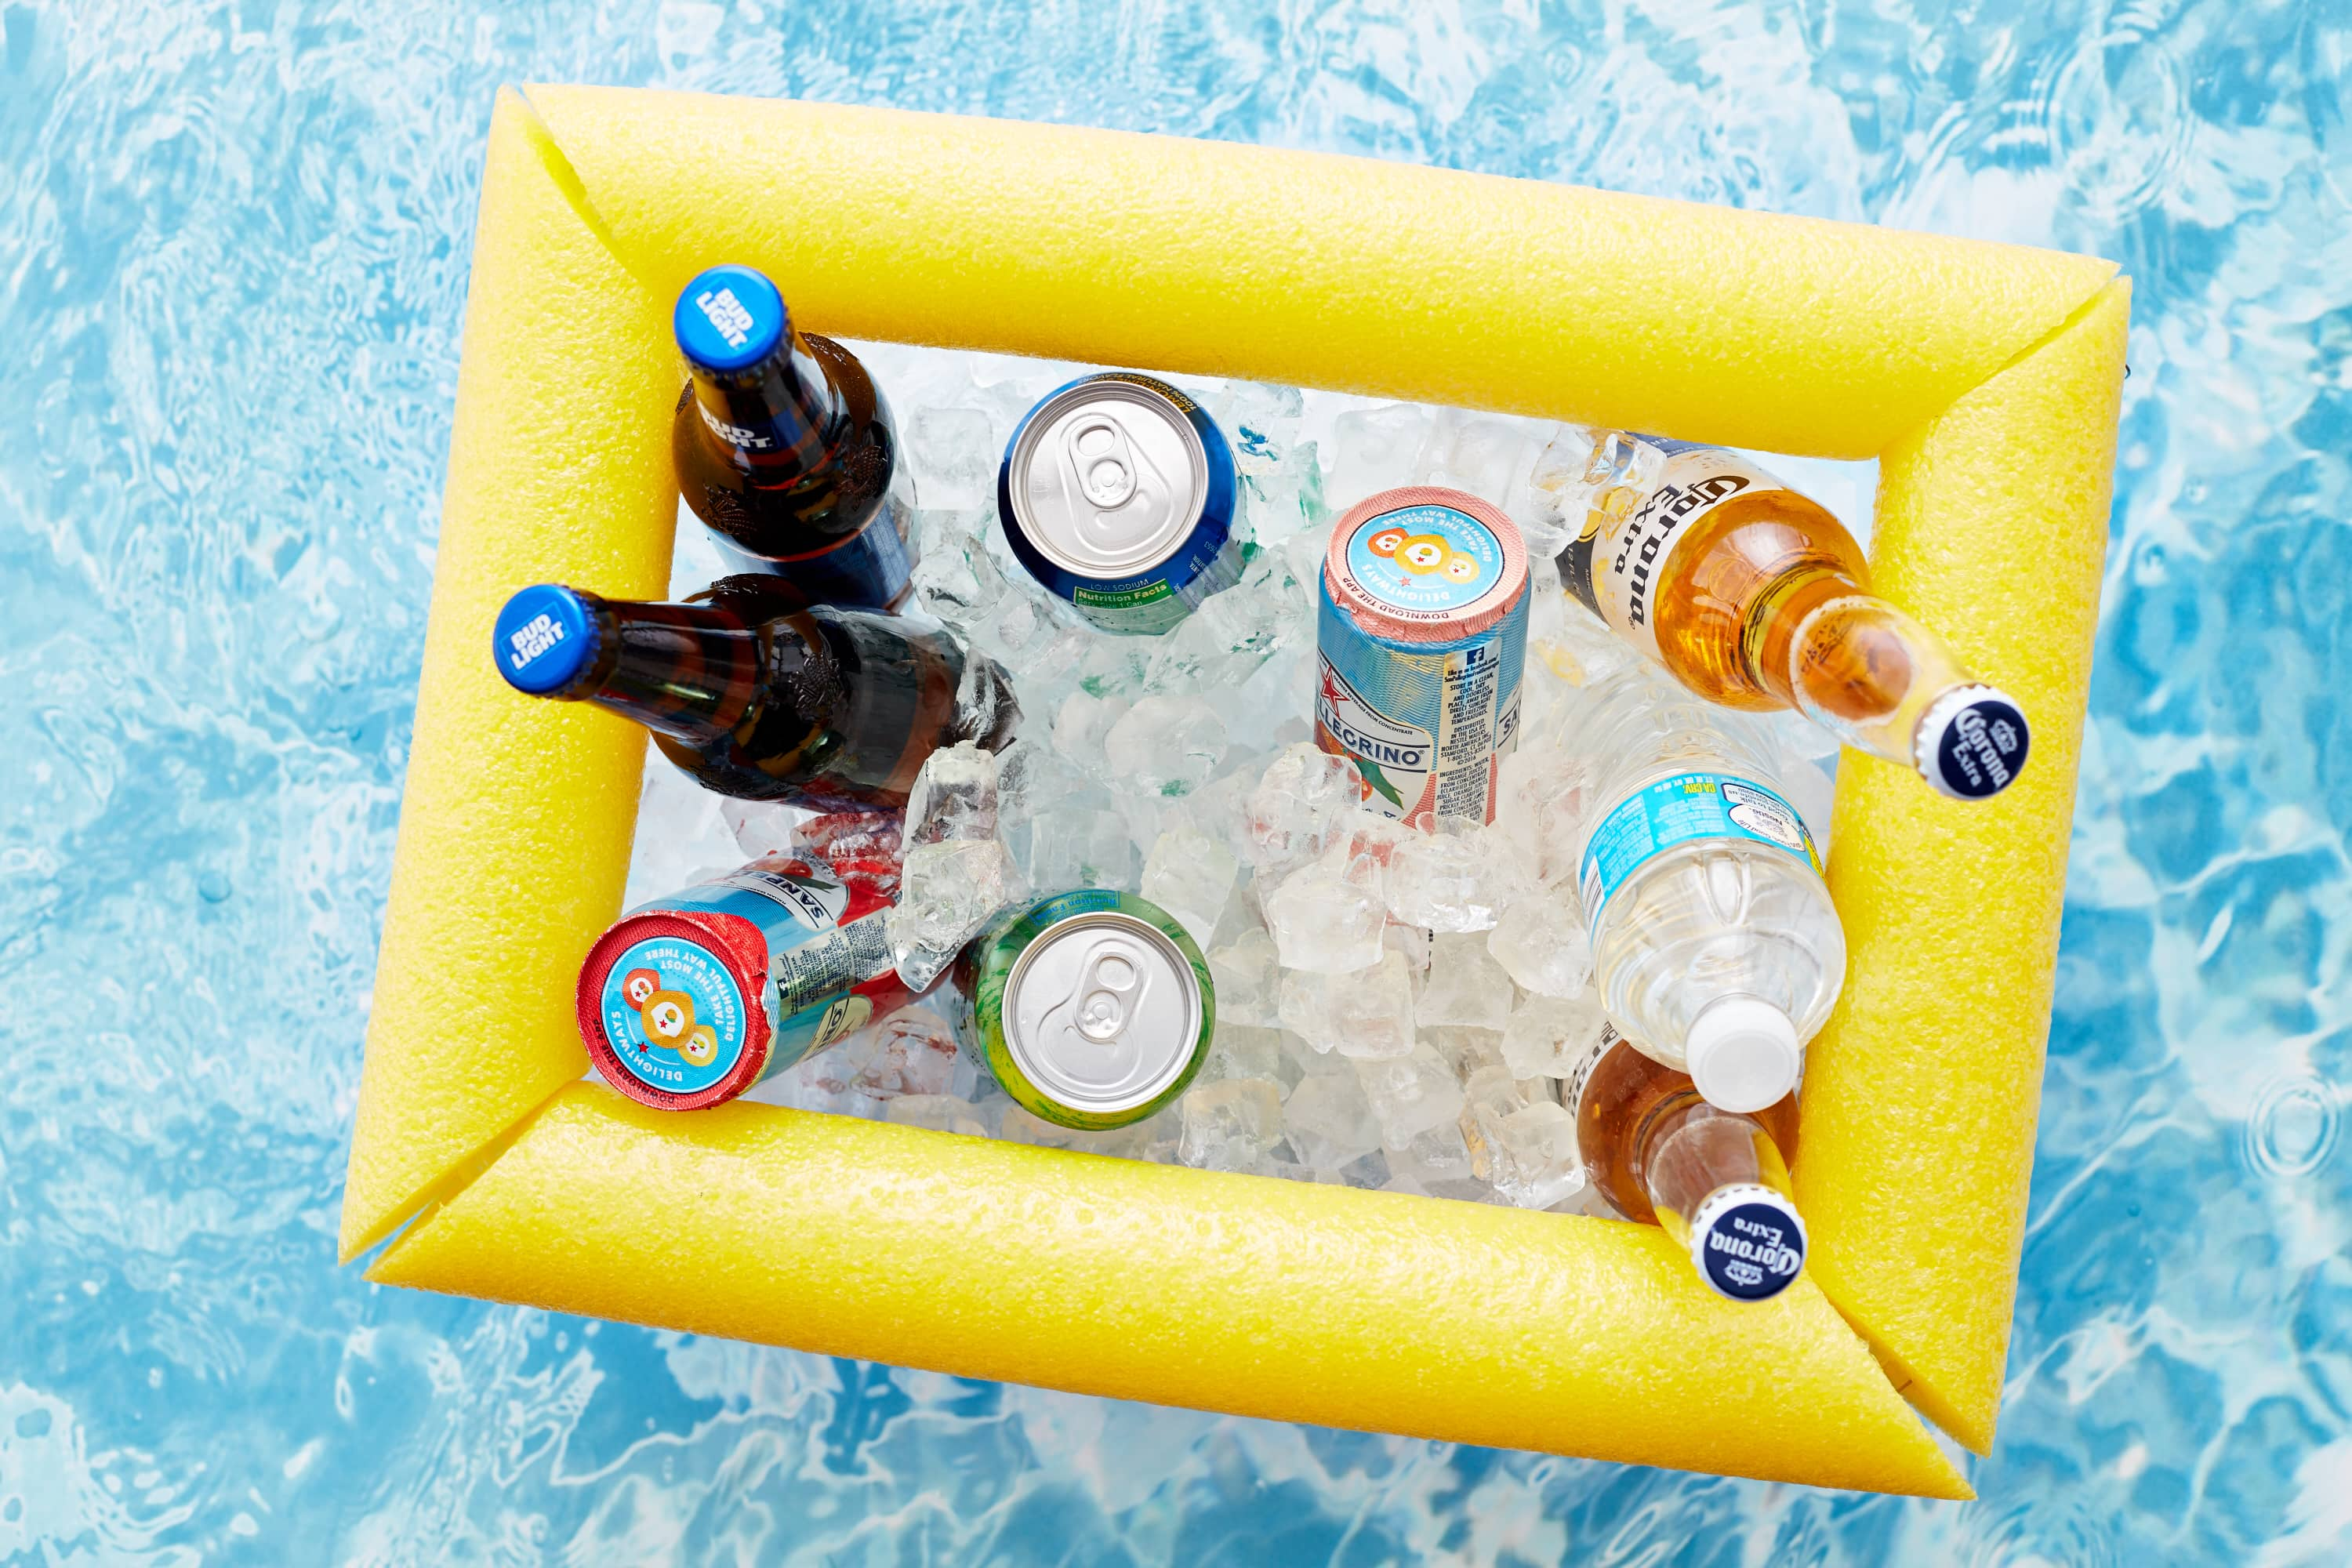 How To Build a Floating Cooler for Less than $10: gallery image 5